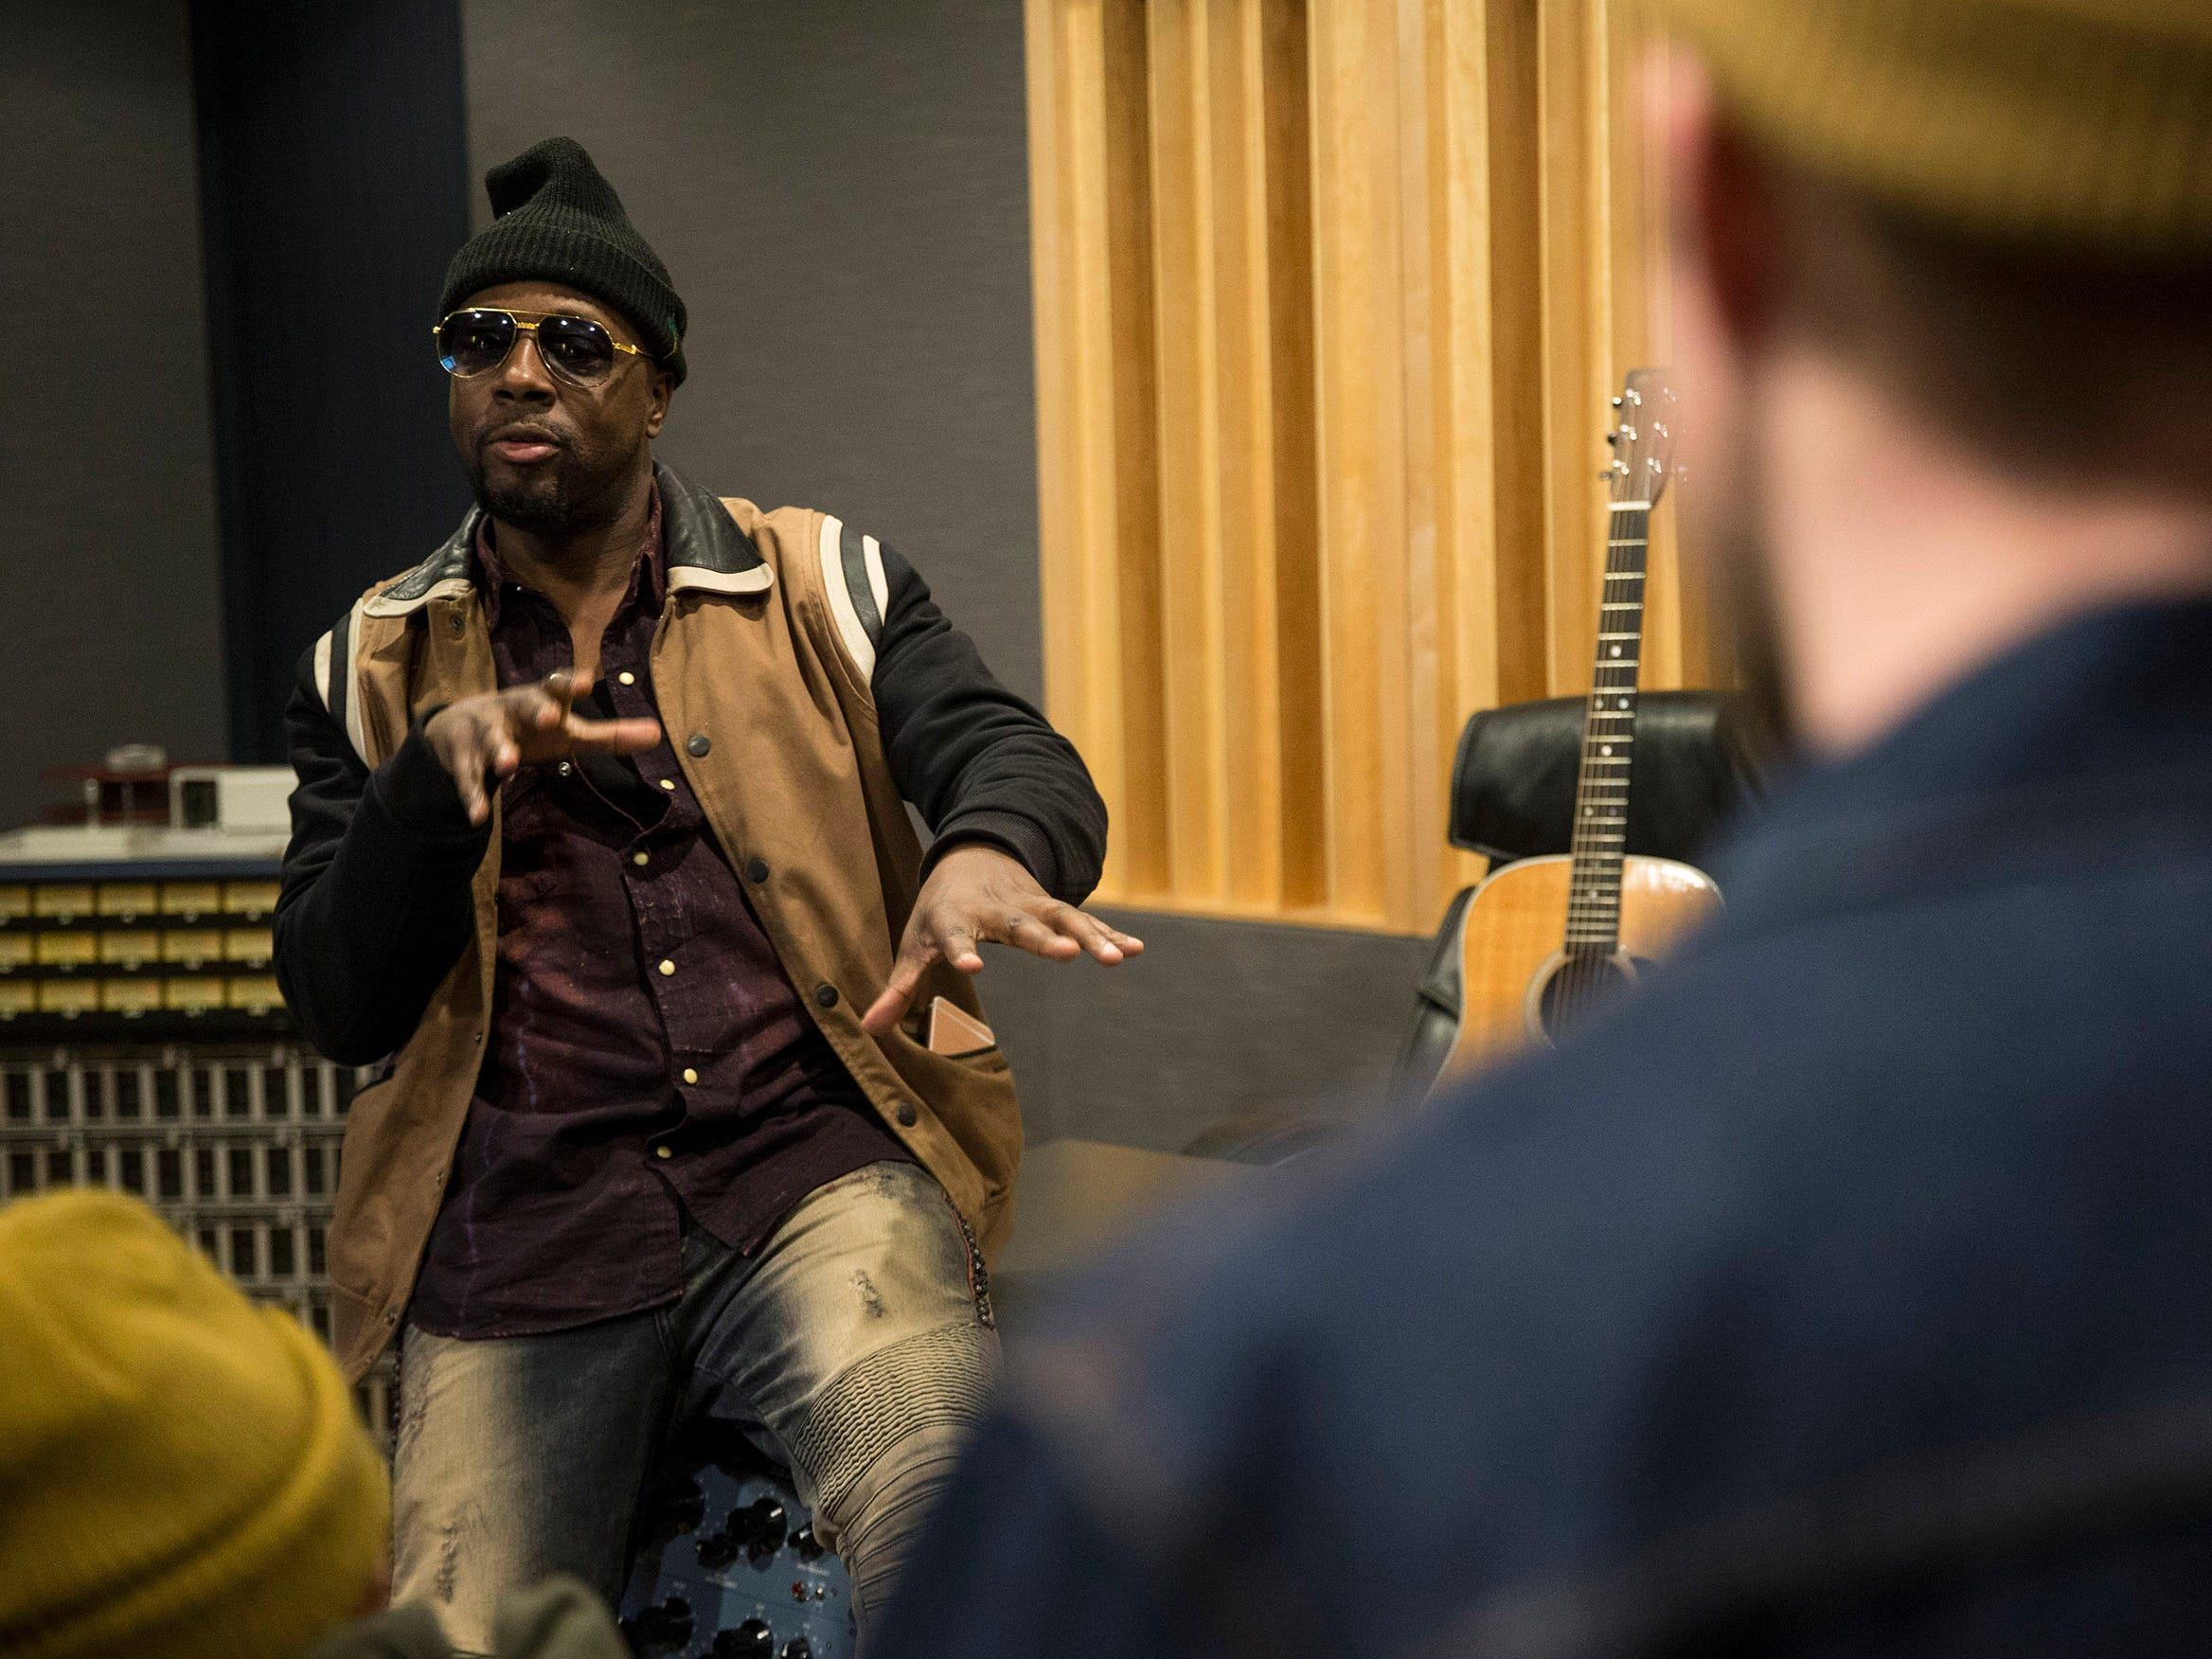 Musician Wyclef Jean drops in to Lakehouse Music Academy to talk with members of the Asbury Park Music Foundation. Wyclef spent a few hours with the kids discussing his career, creating music, and offered advice of how to be successful in life. 